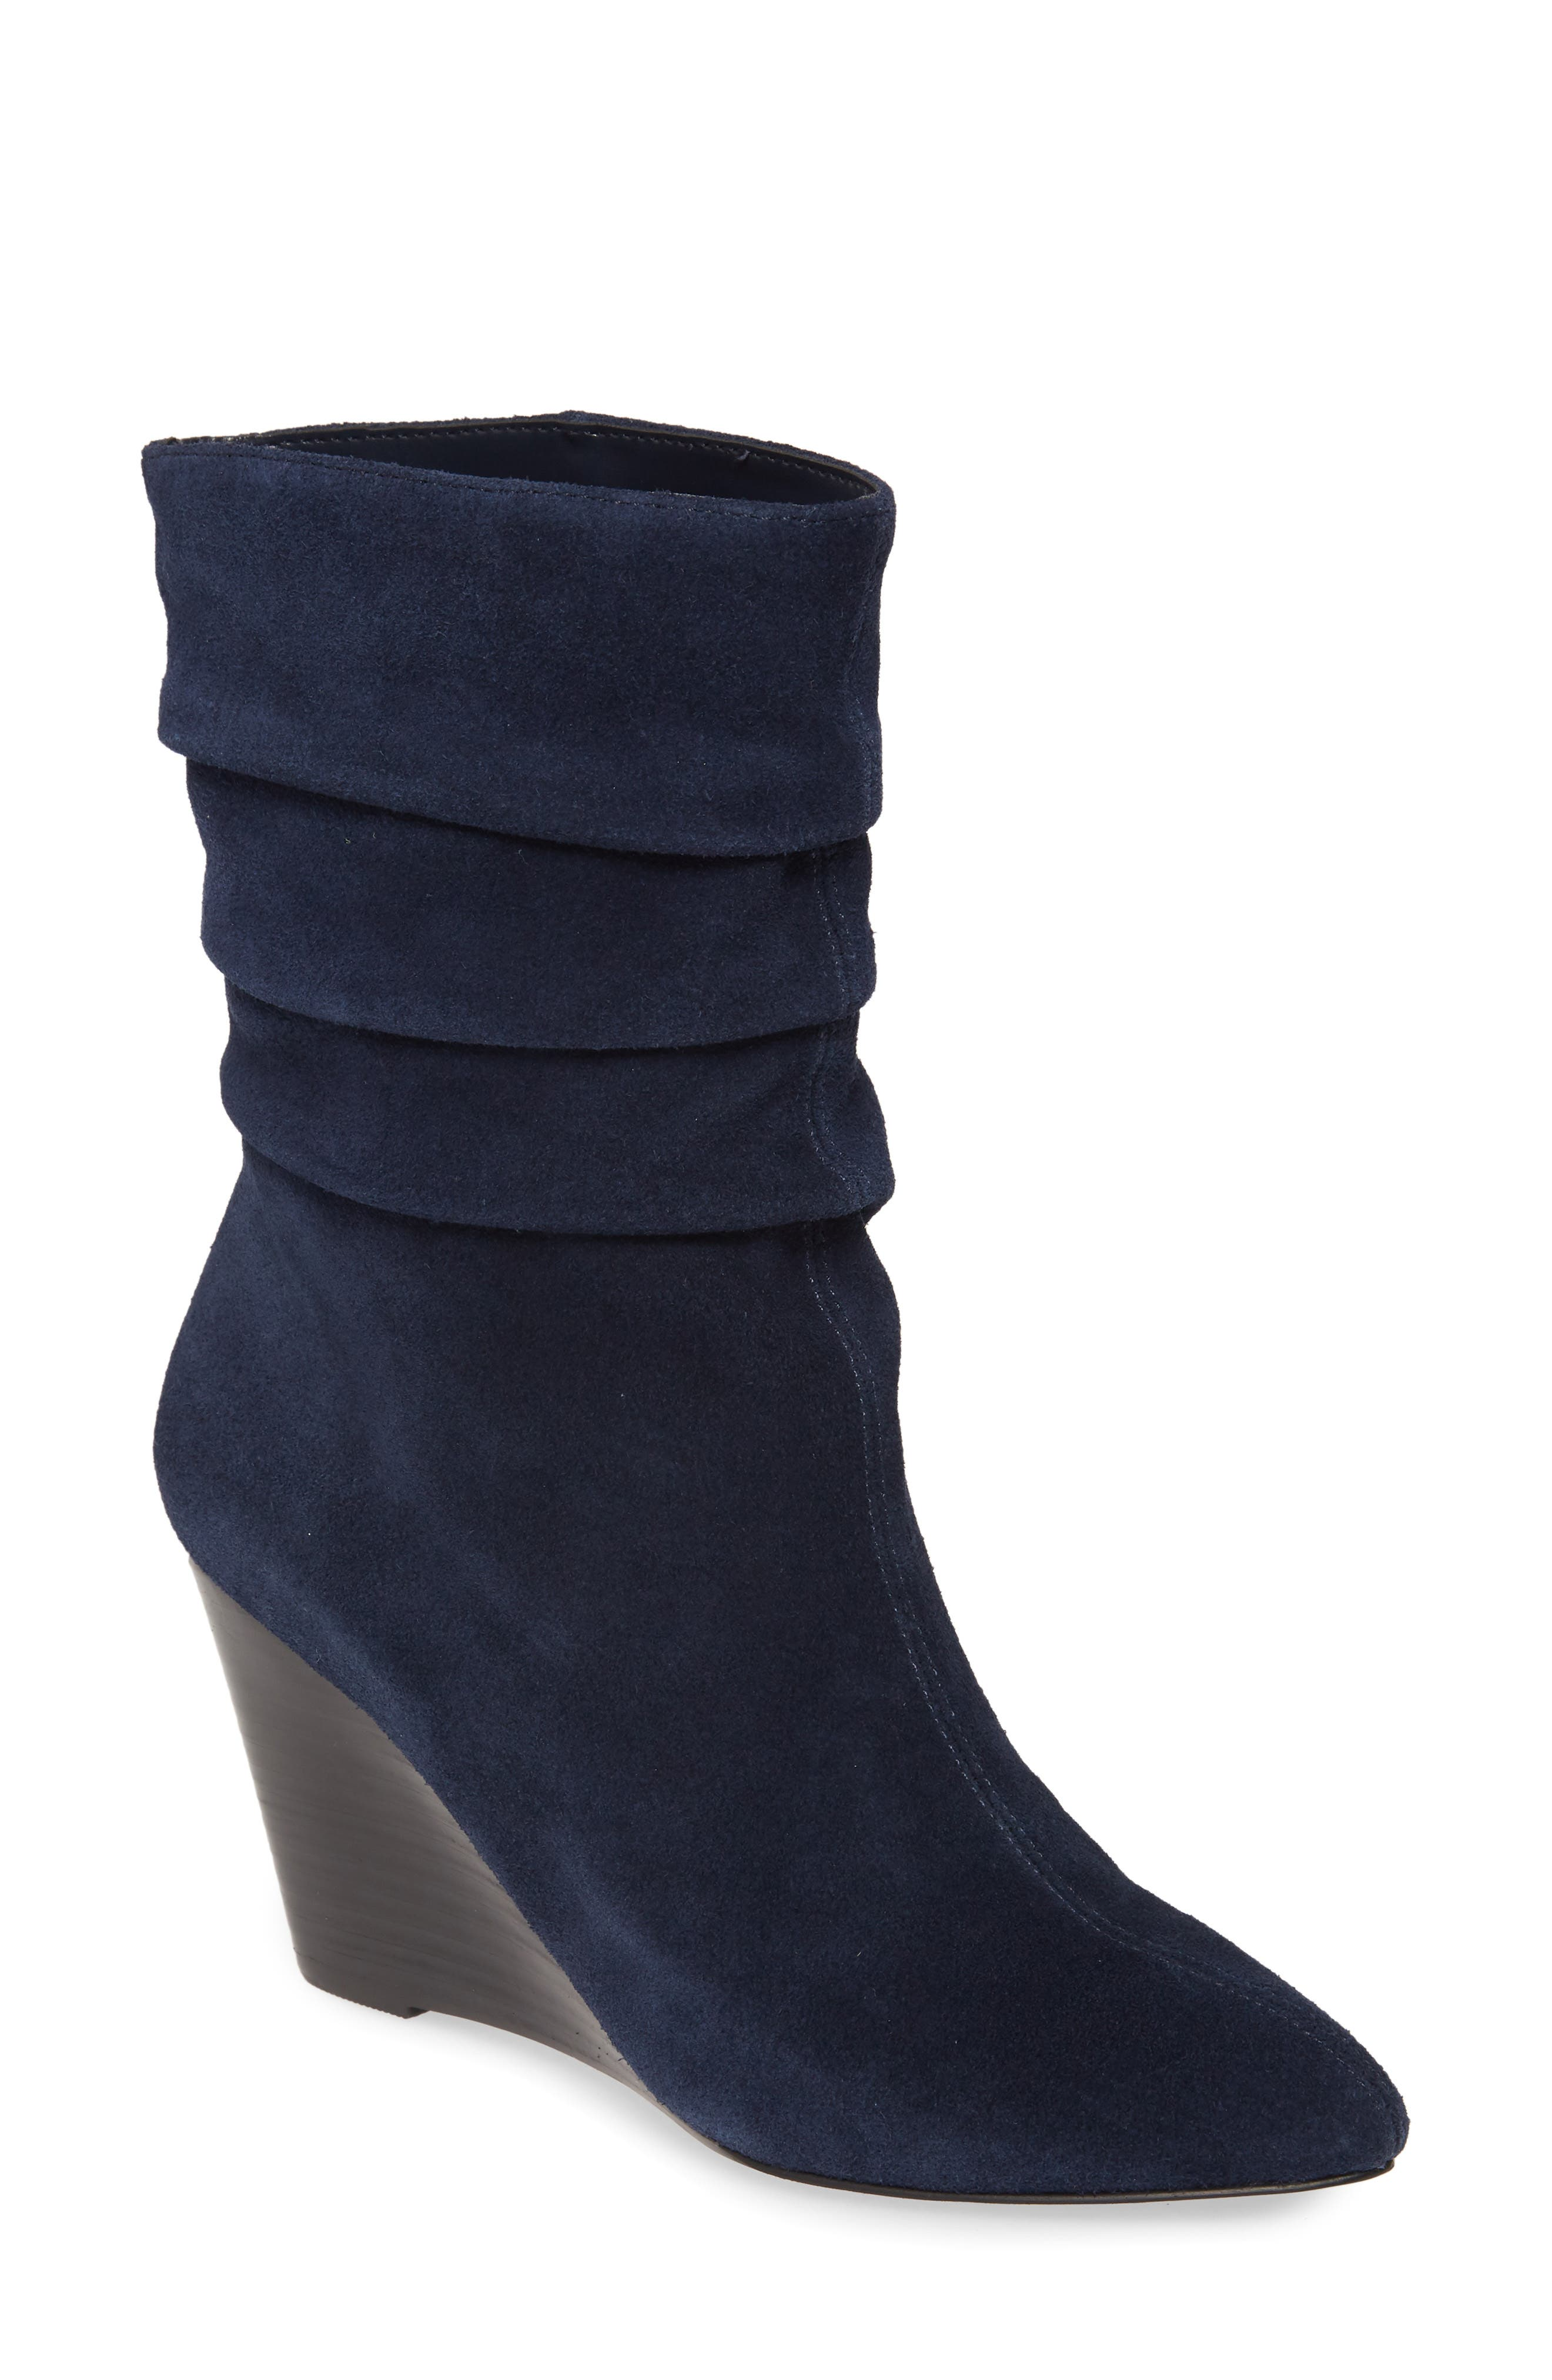 Charles By Charles David Empire Wedge Bootie, Blue